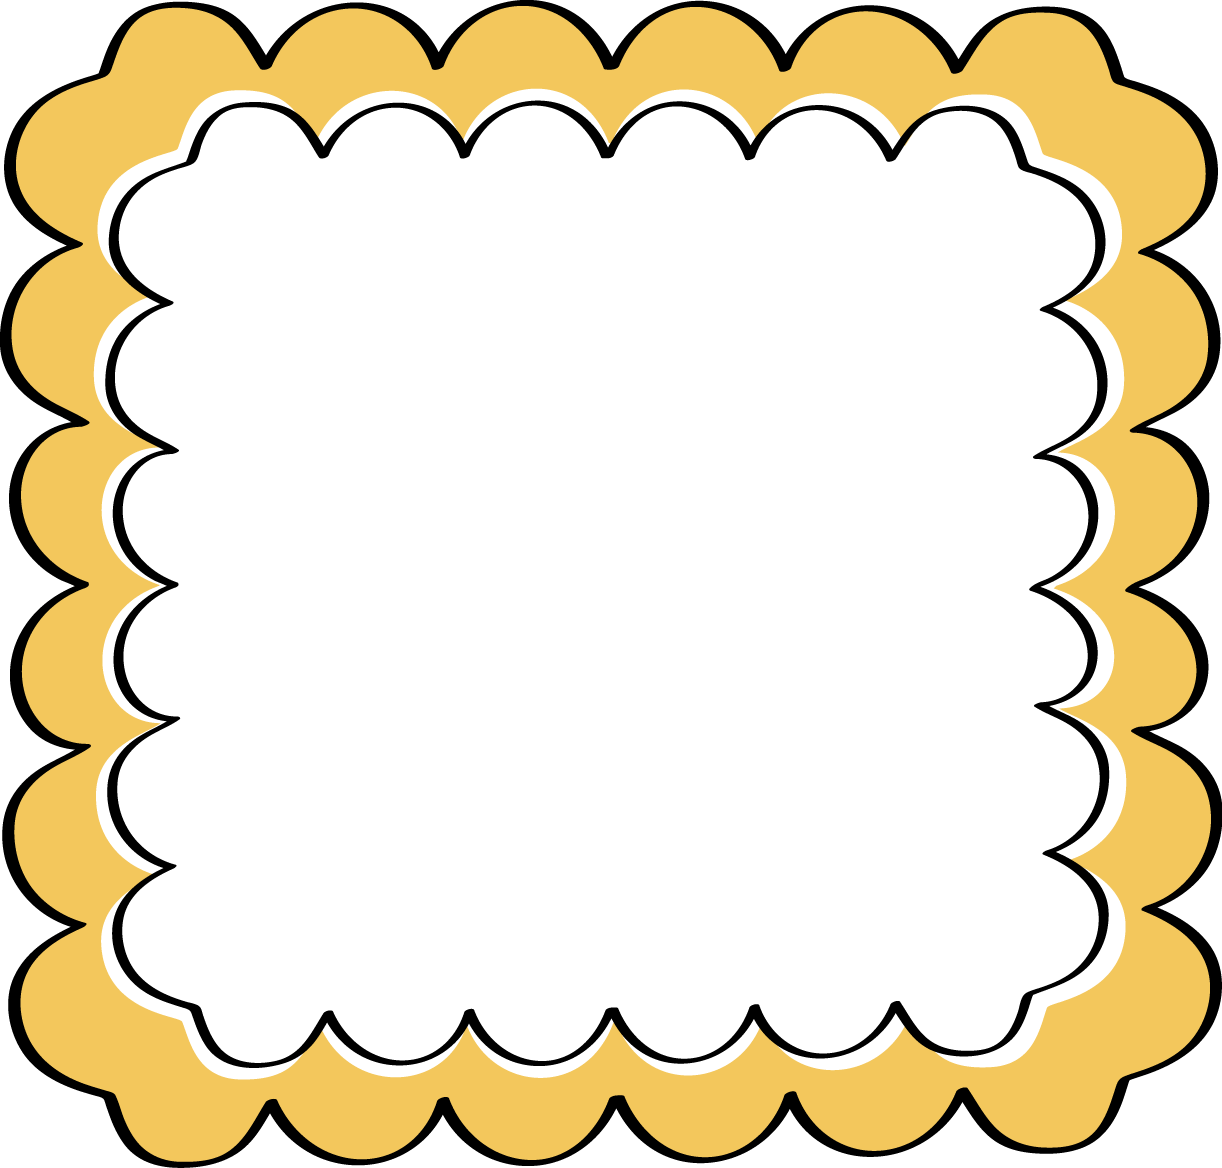 Frame clipart yellow Free Scalloped Frames Clip Yellow